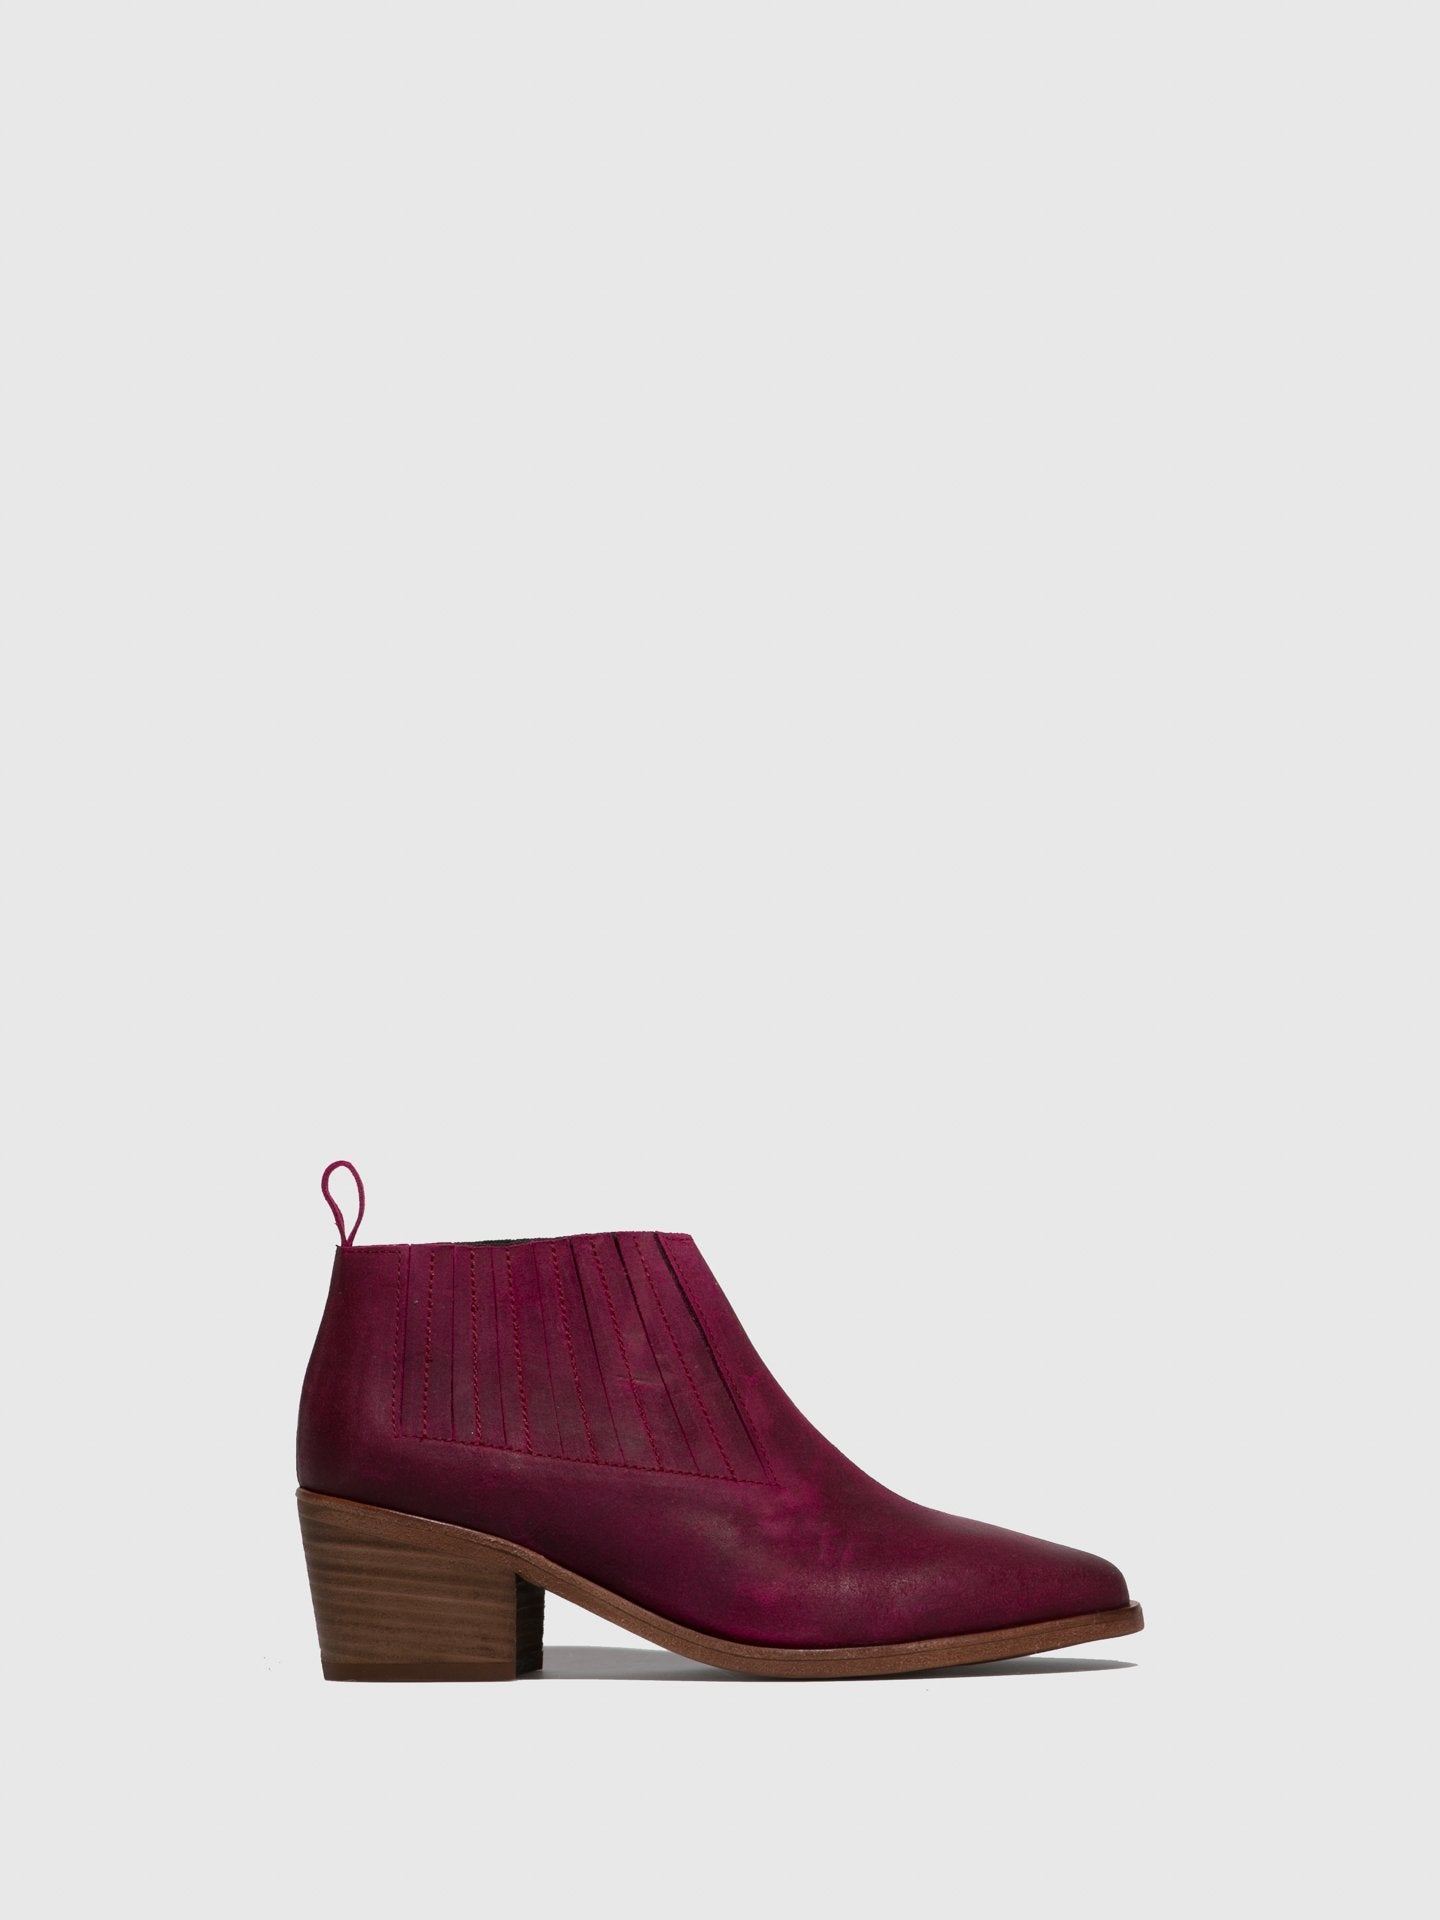 Only2me Pink Leather Elasticated Ankle Boots